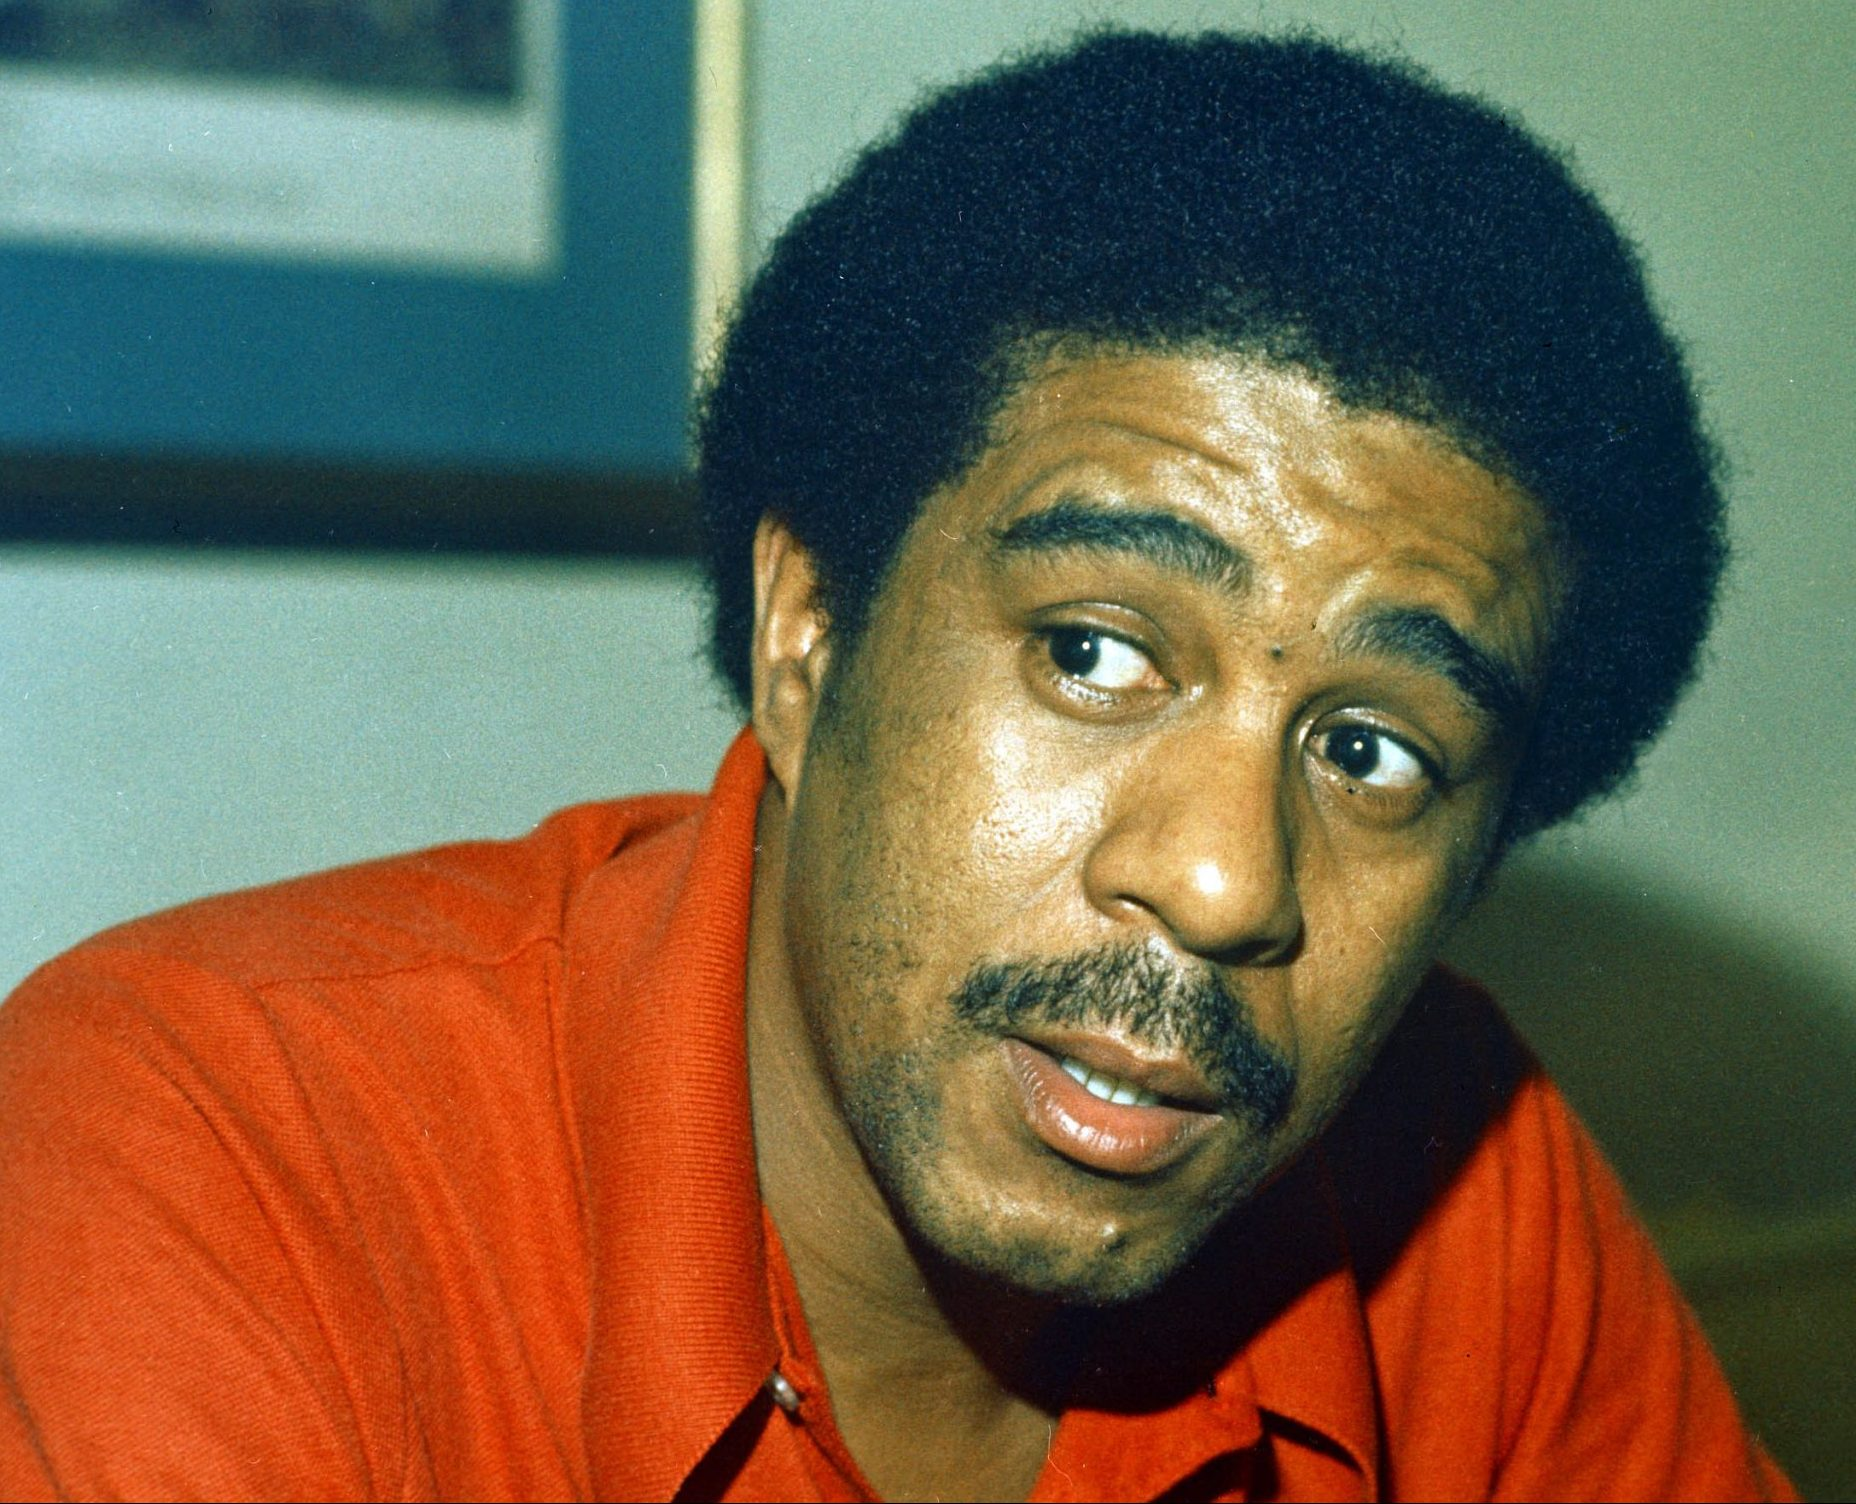 ap070822015593 custom de239f6a7afa27e98bd4be03021808be7c523e25 scaled e1606814155305 20 Things You Might Not Have Known About Richard Pryor